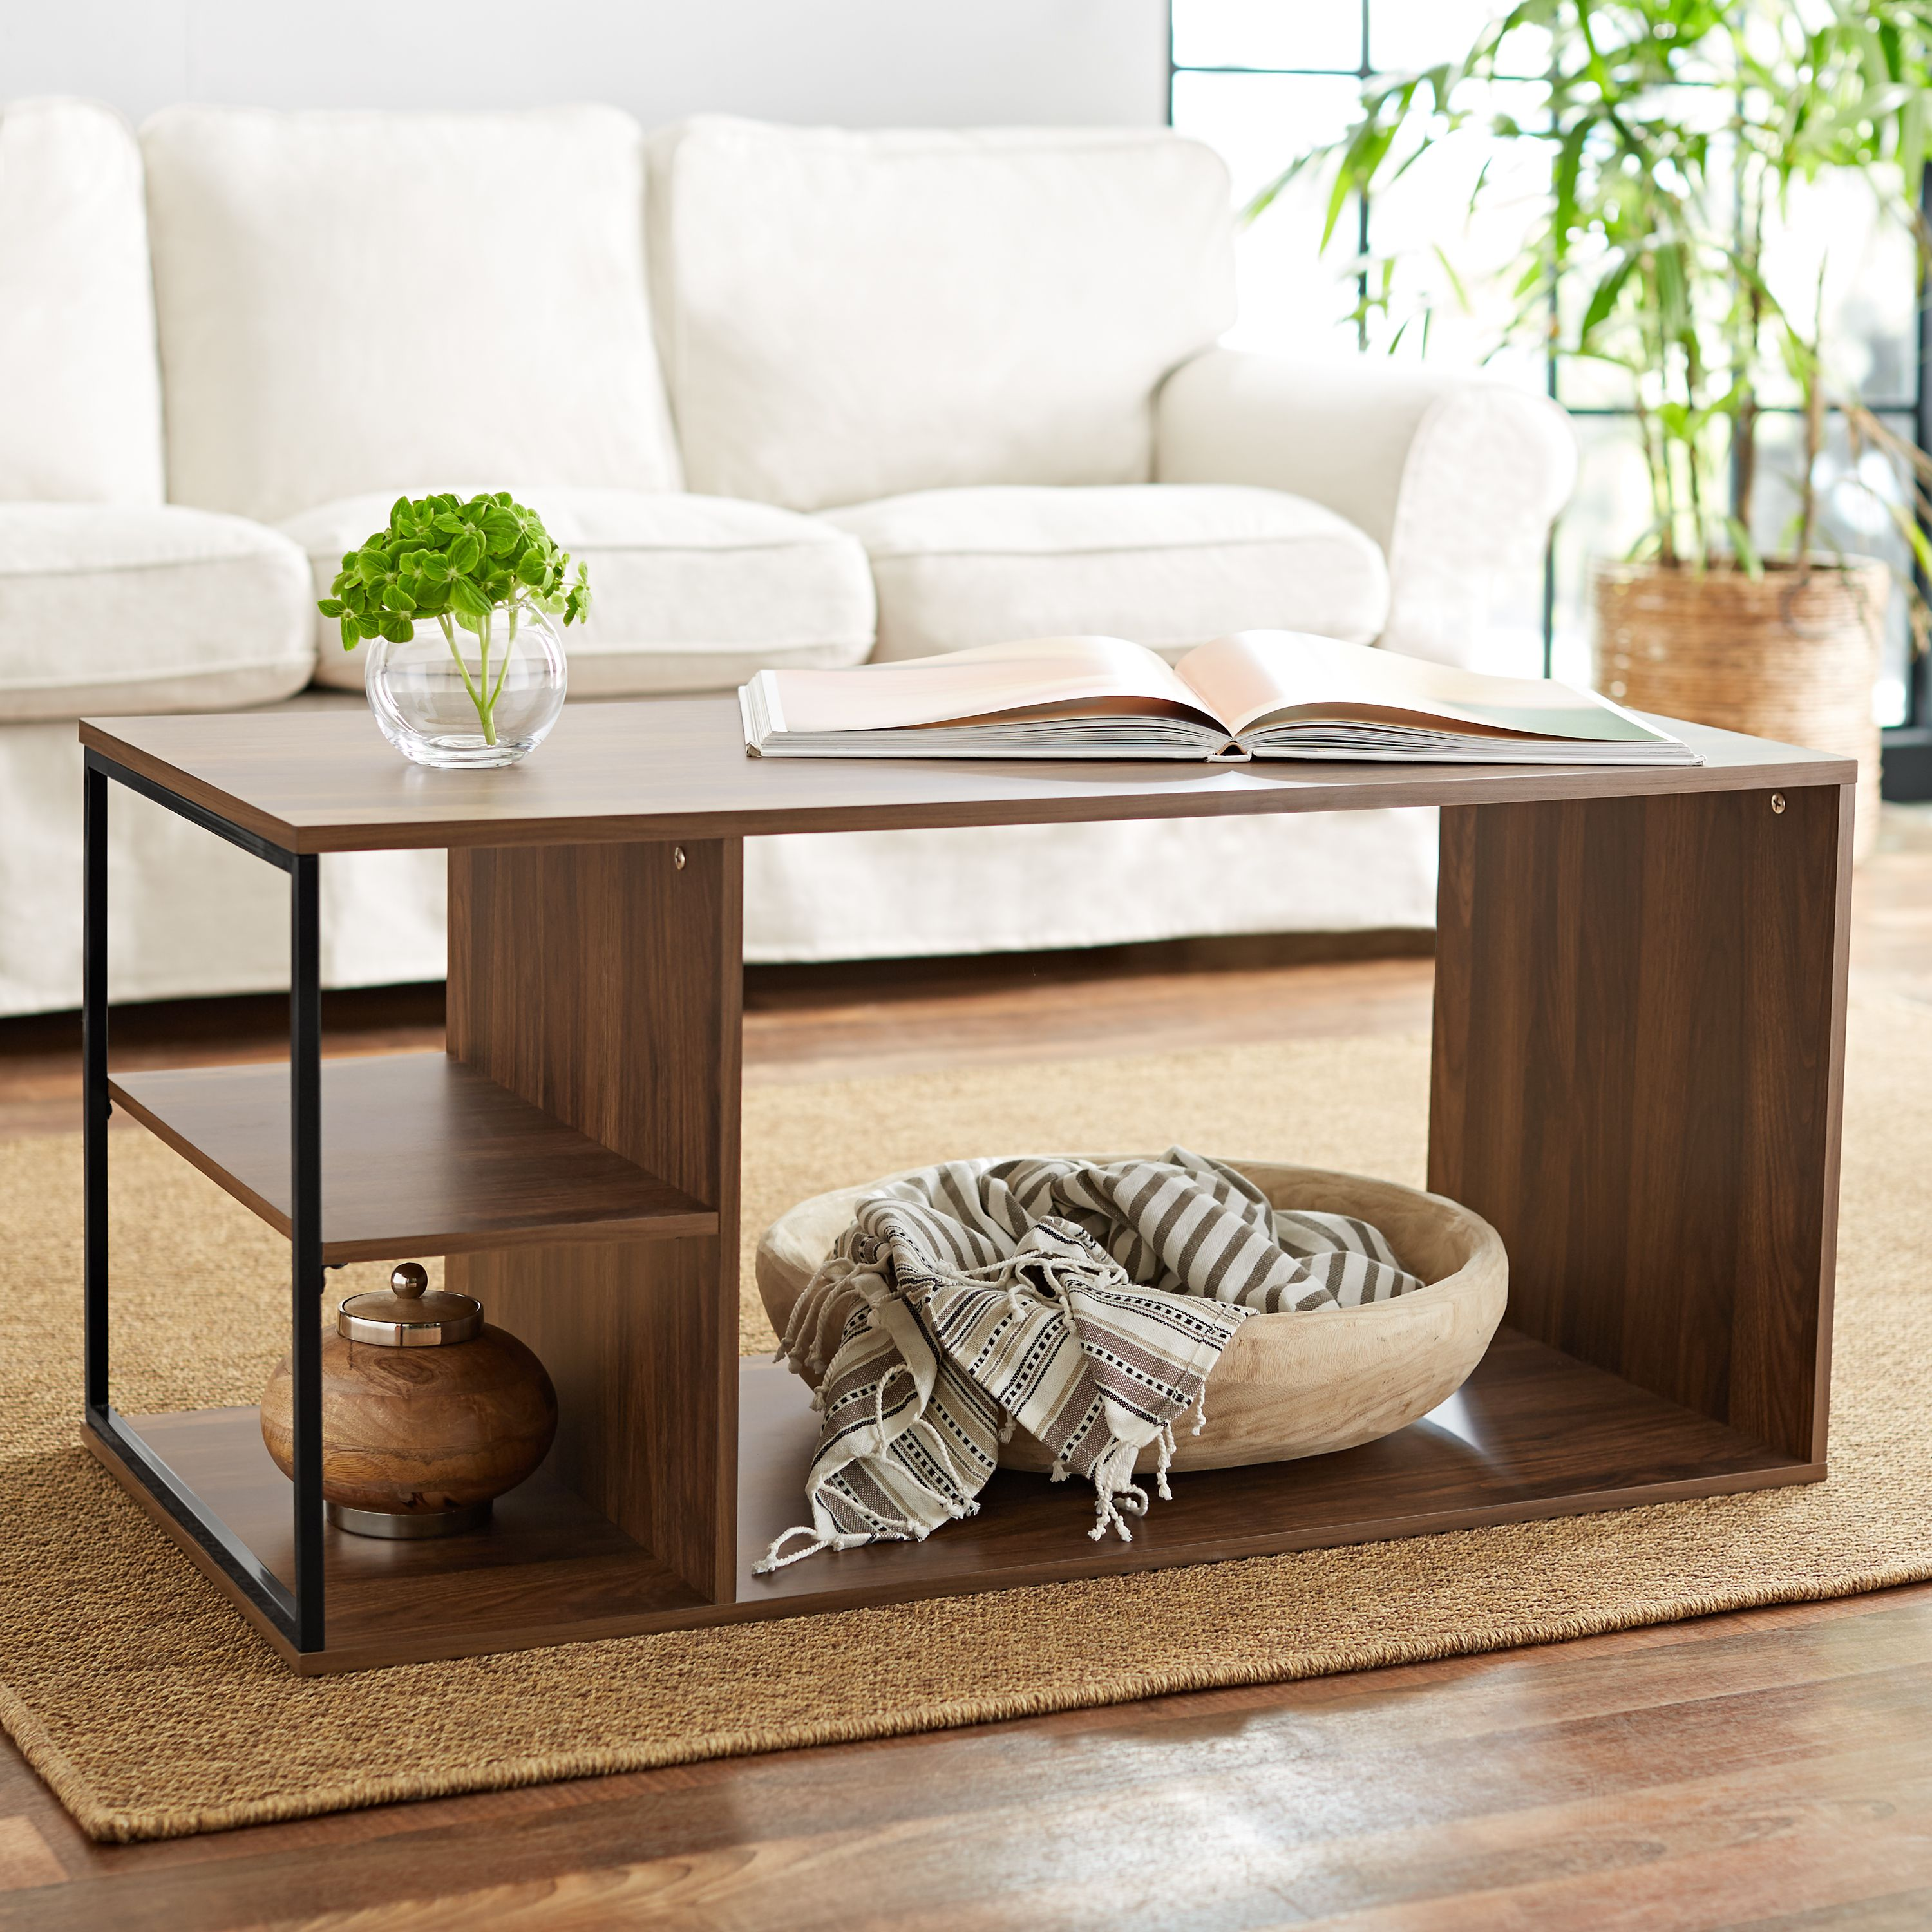 Mainstays Kalla Wood and Metal Coffee Table, Multiple Colors